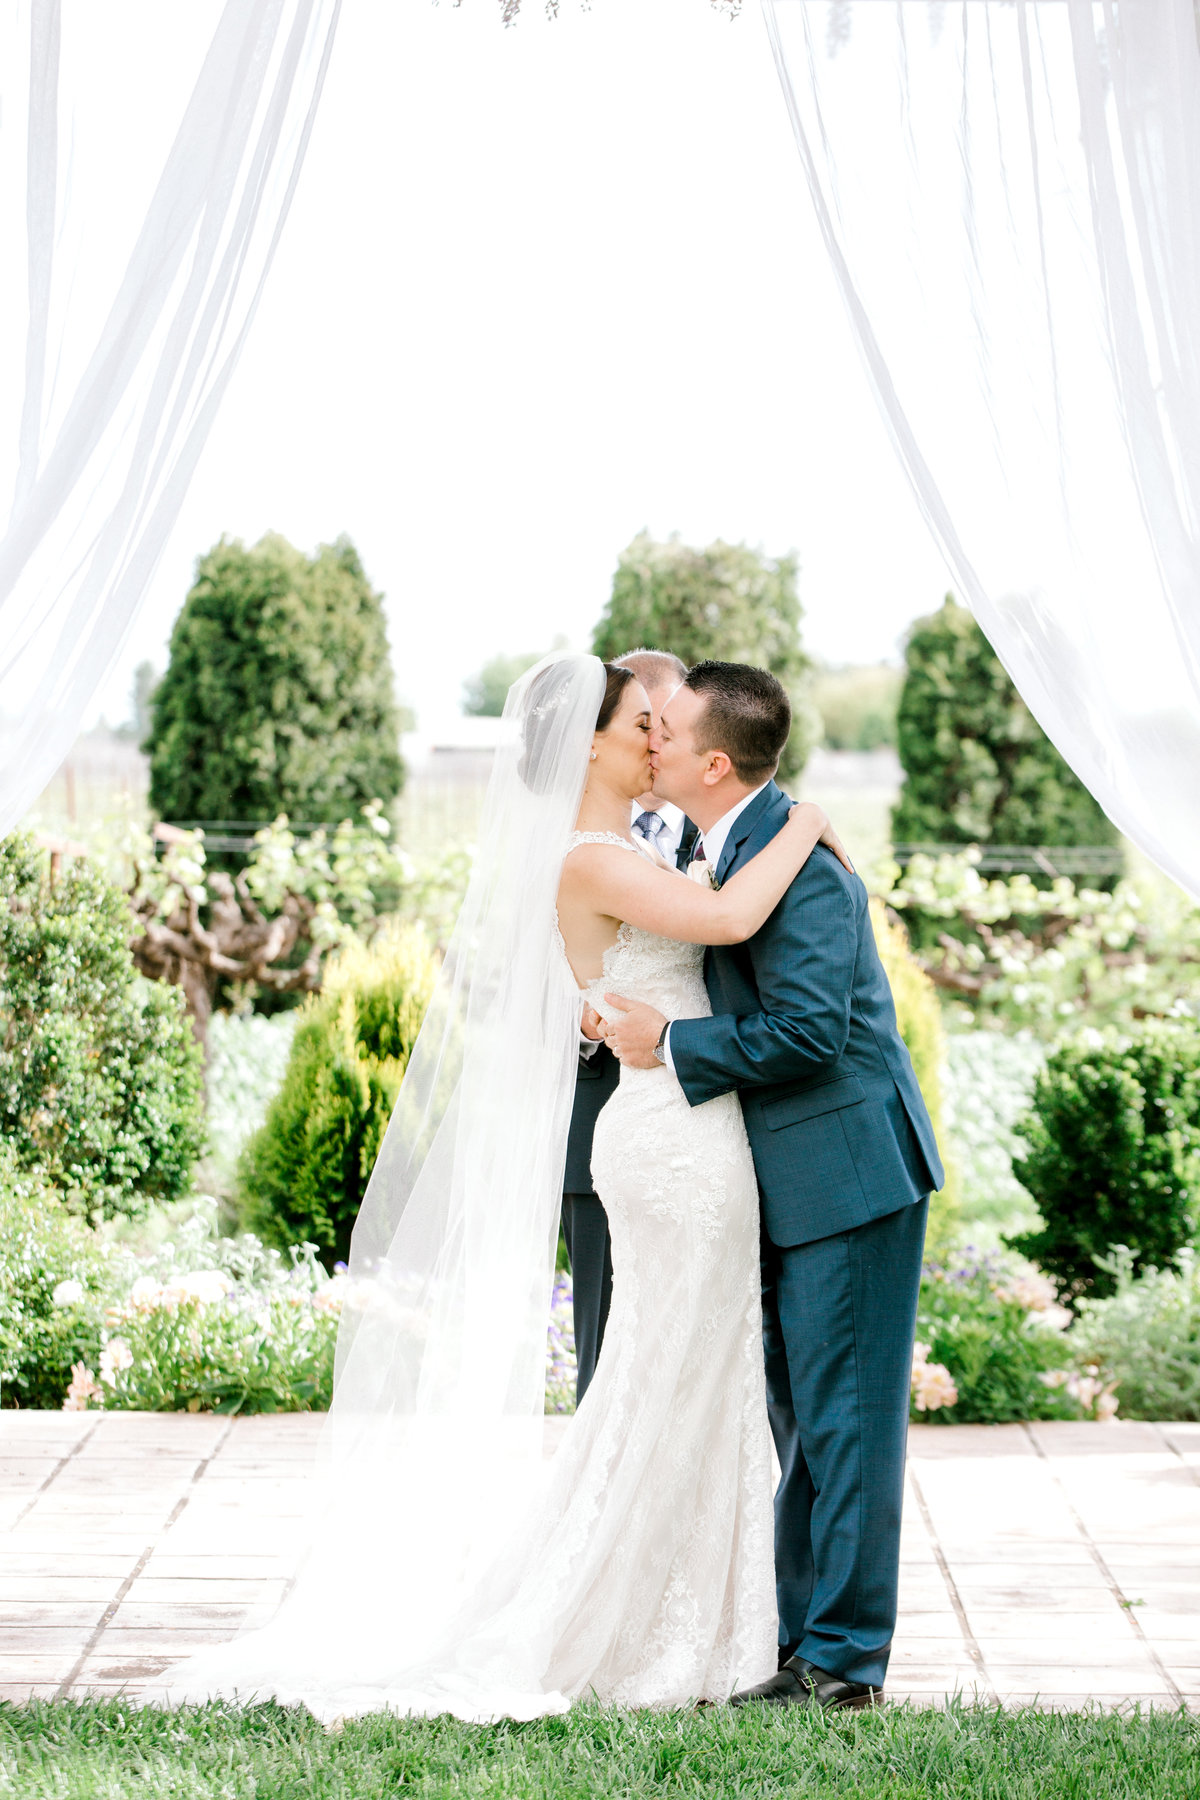 Bride and groom share first kiss as husband and wife at Vintners Inn in Santa Rosa California